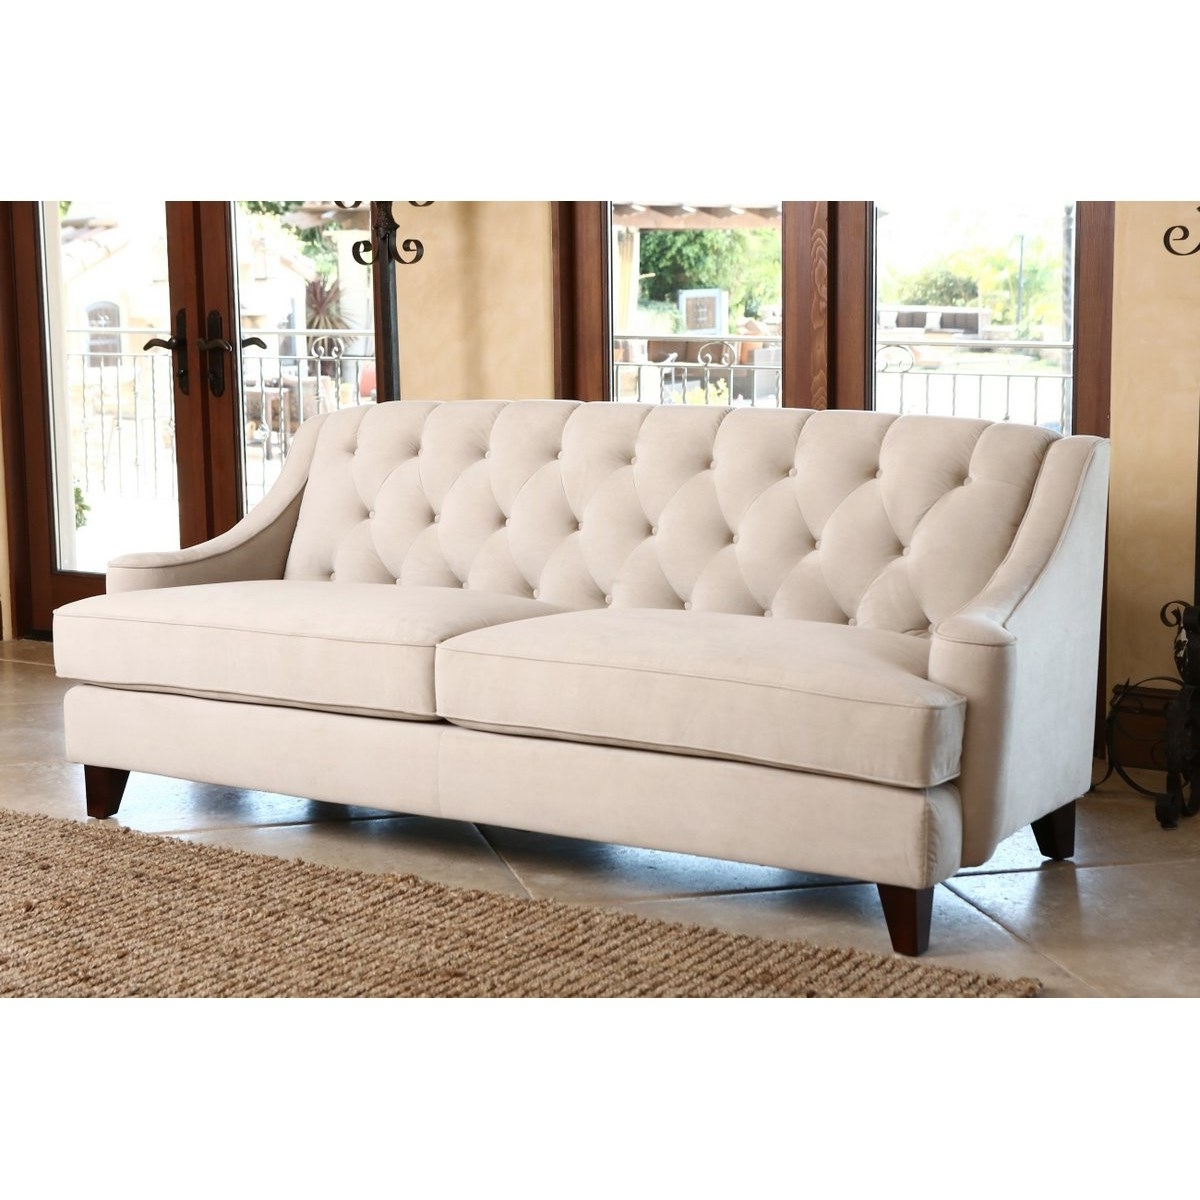 Furniture : Kijiji Sofa On Sale Oxford Tufted Sectional Sofa Regarding Famous Quad Cities Sectional Sofas (View 11 of 20)